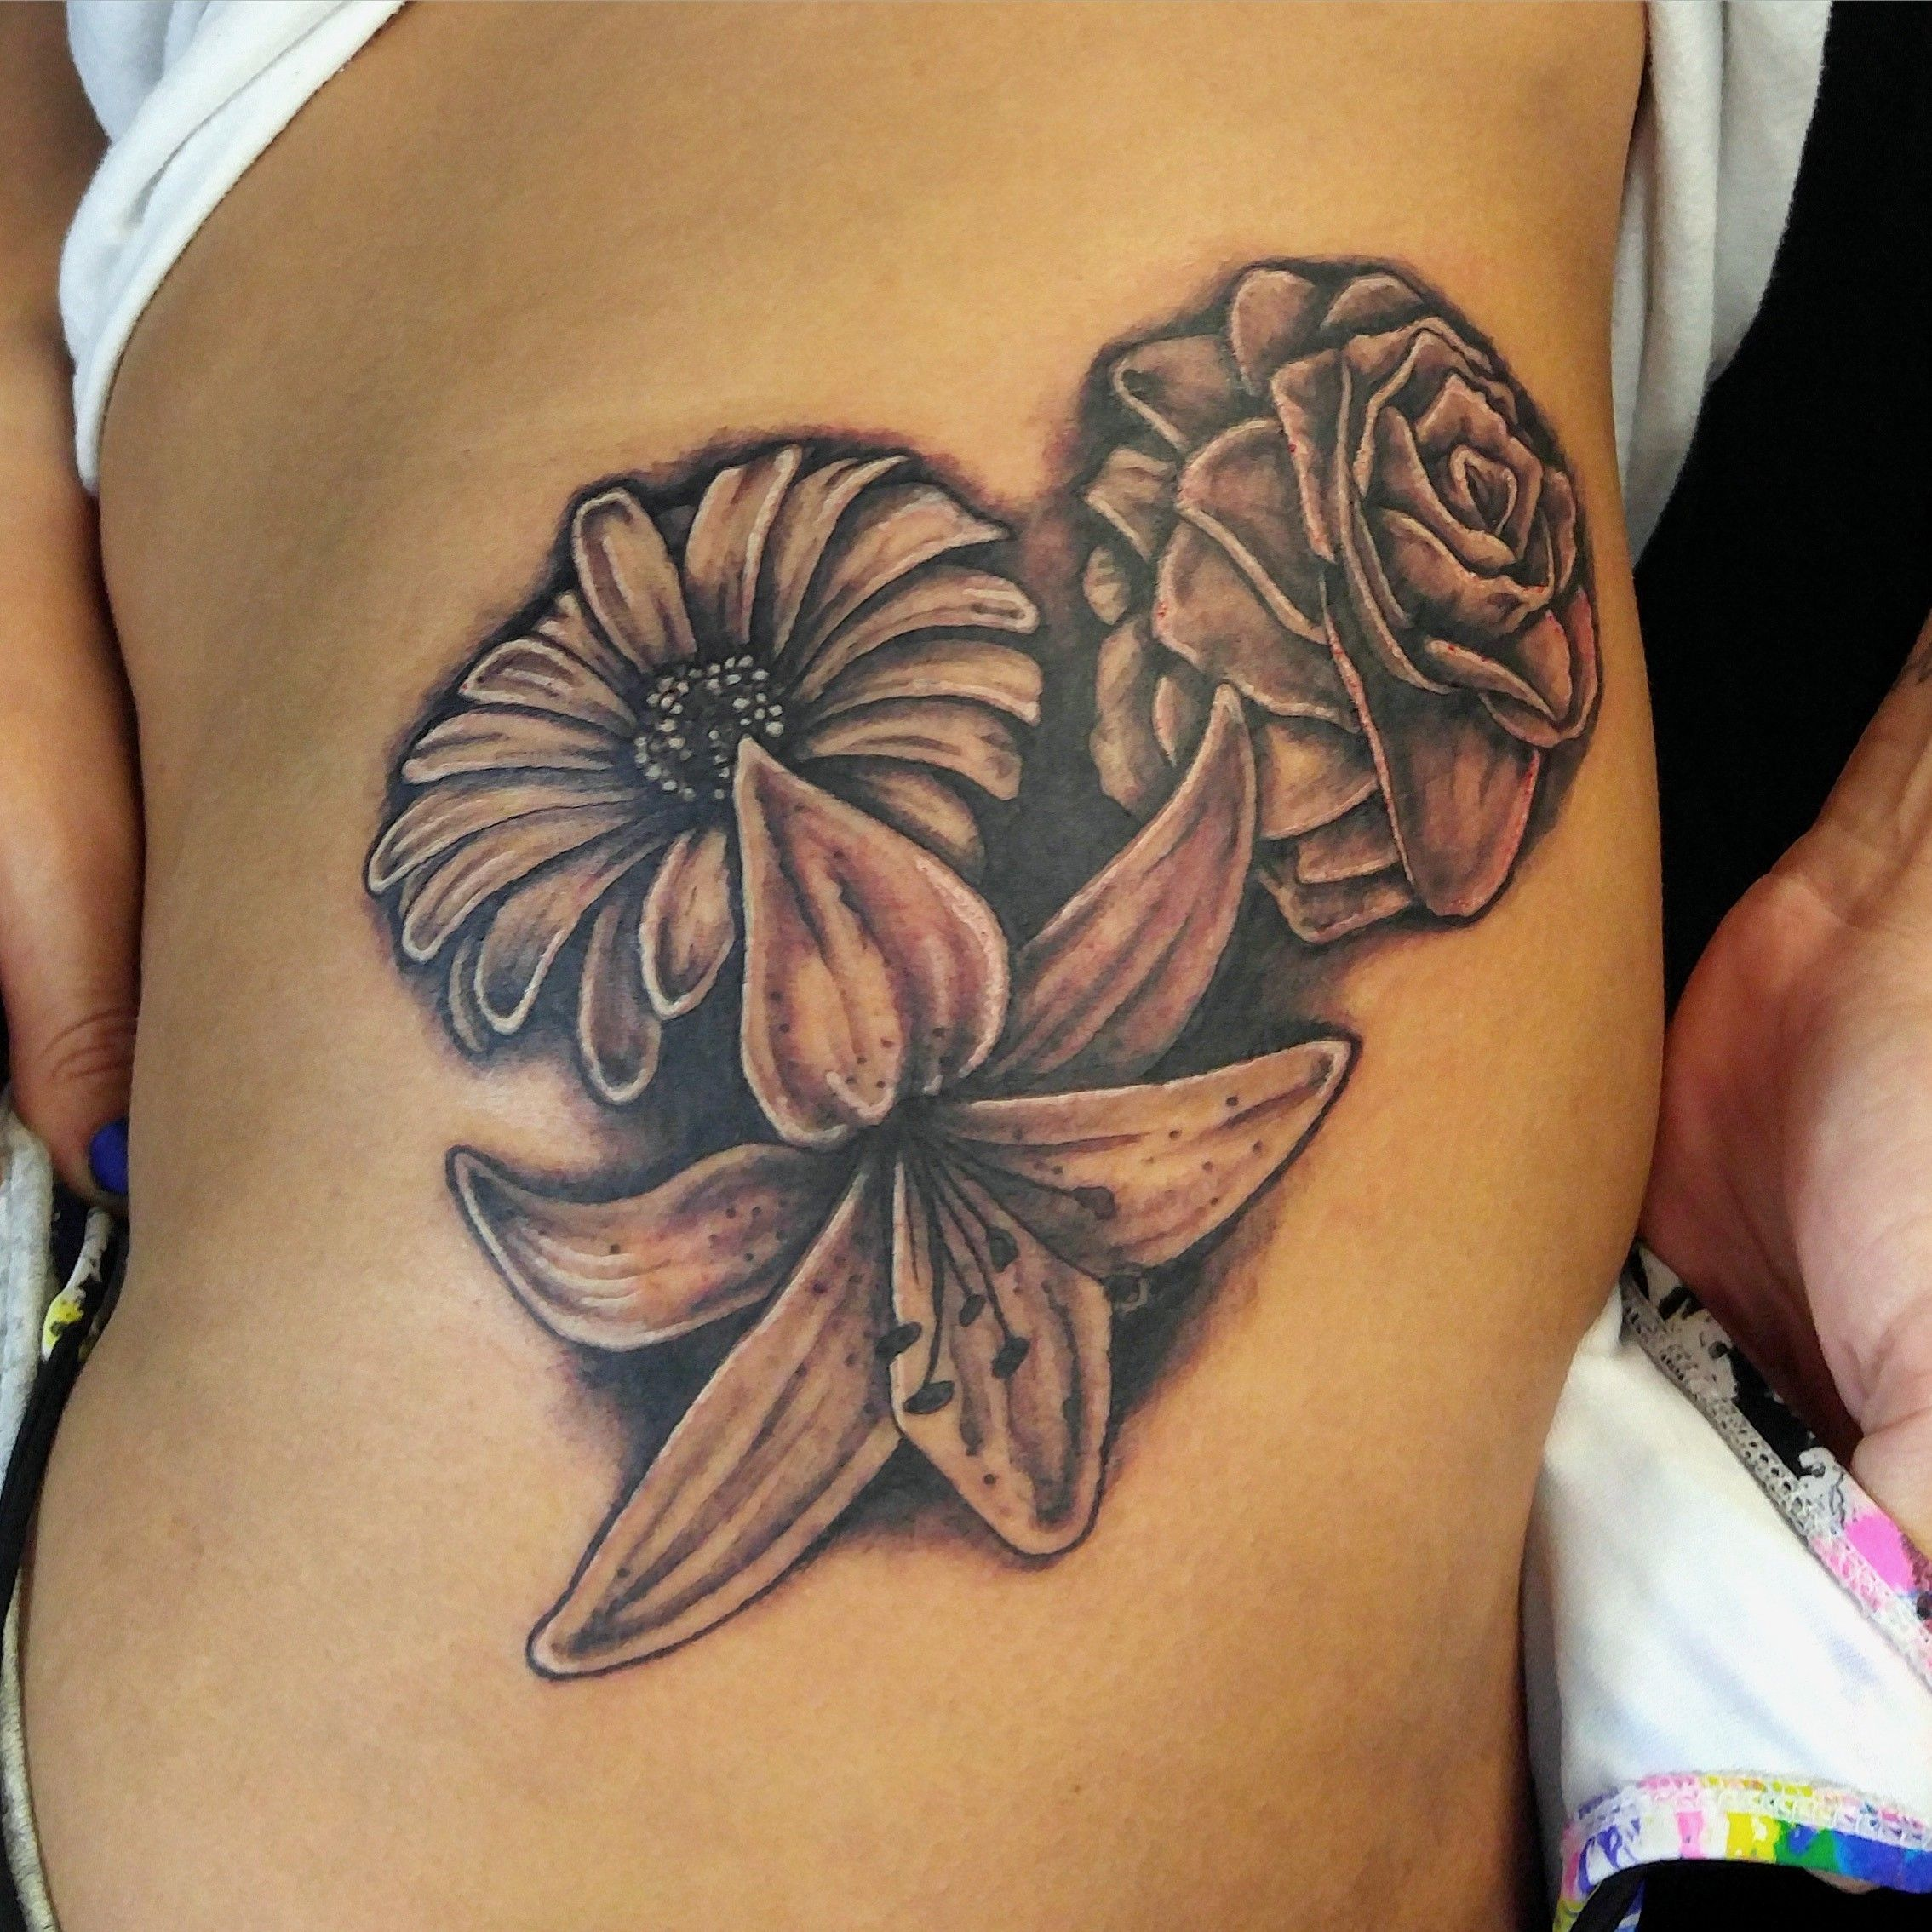 Rose Lily Daisy Tattoo By Mike Hessinger at Moonlight